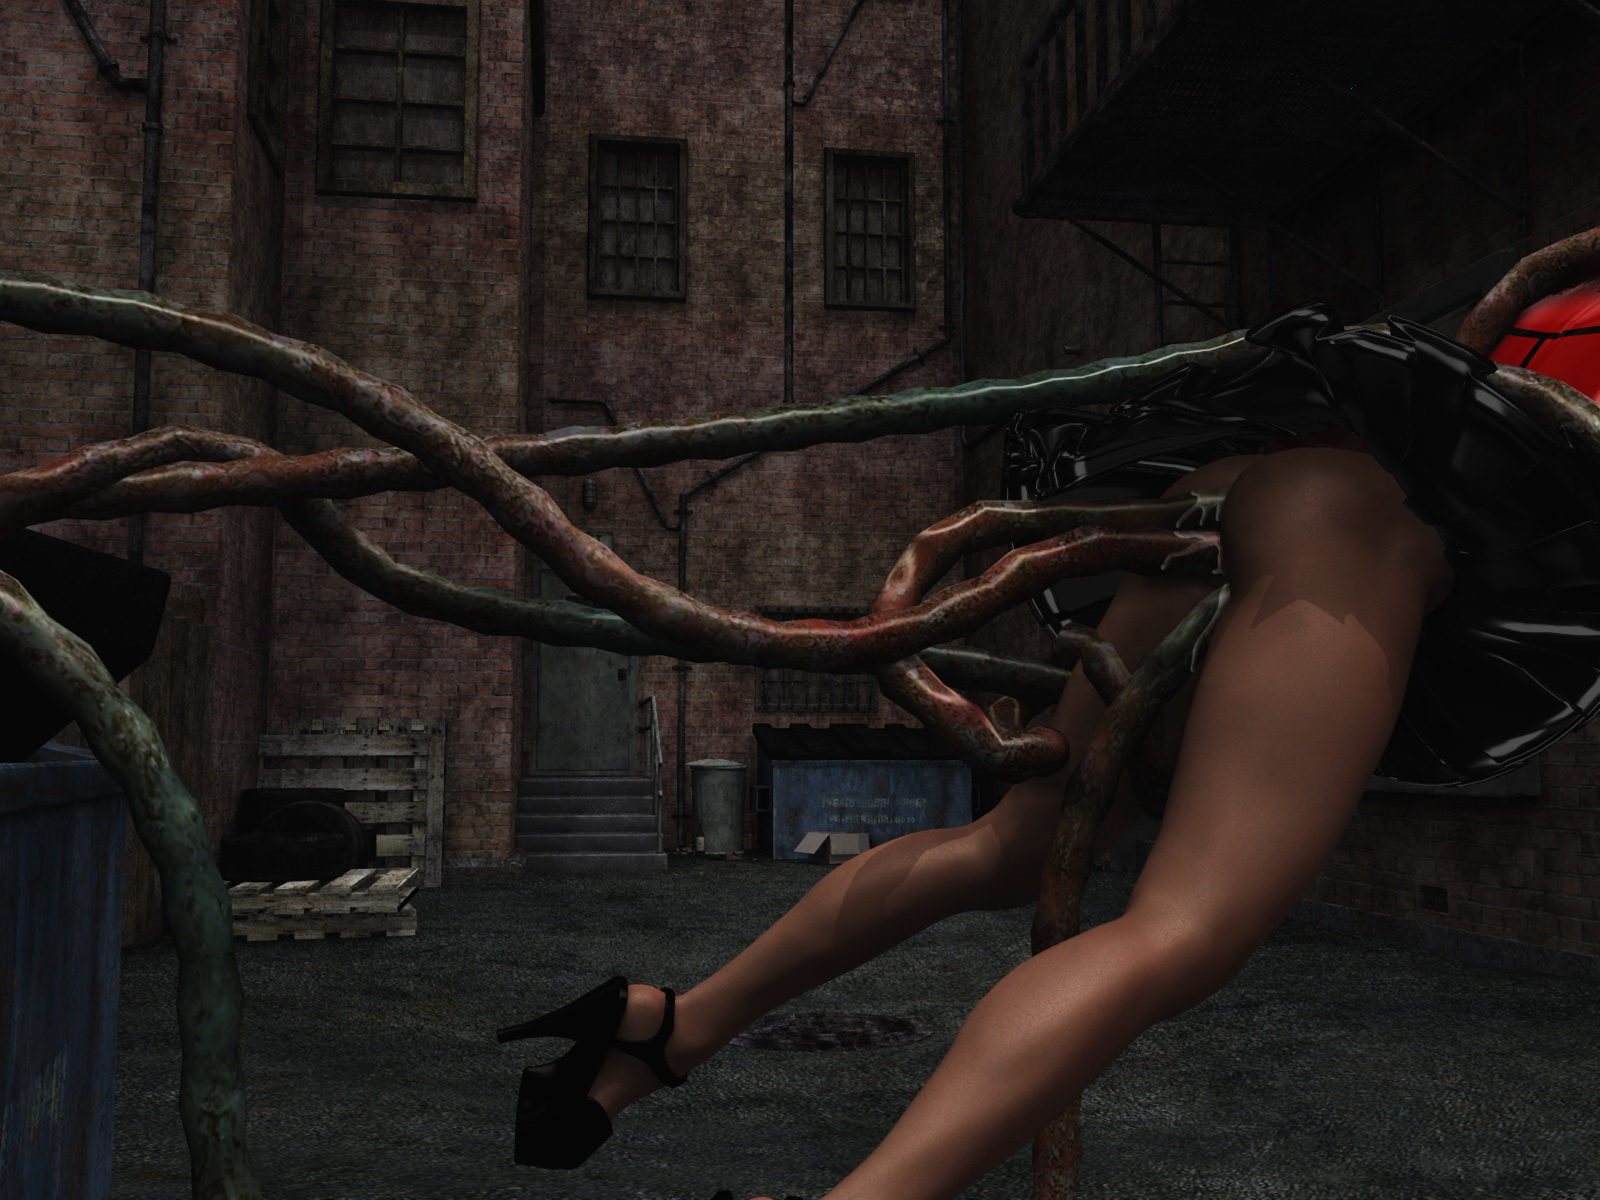 3d monster tentacle 3gp video download erotic galleries